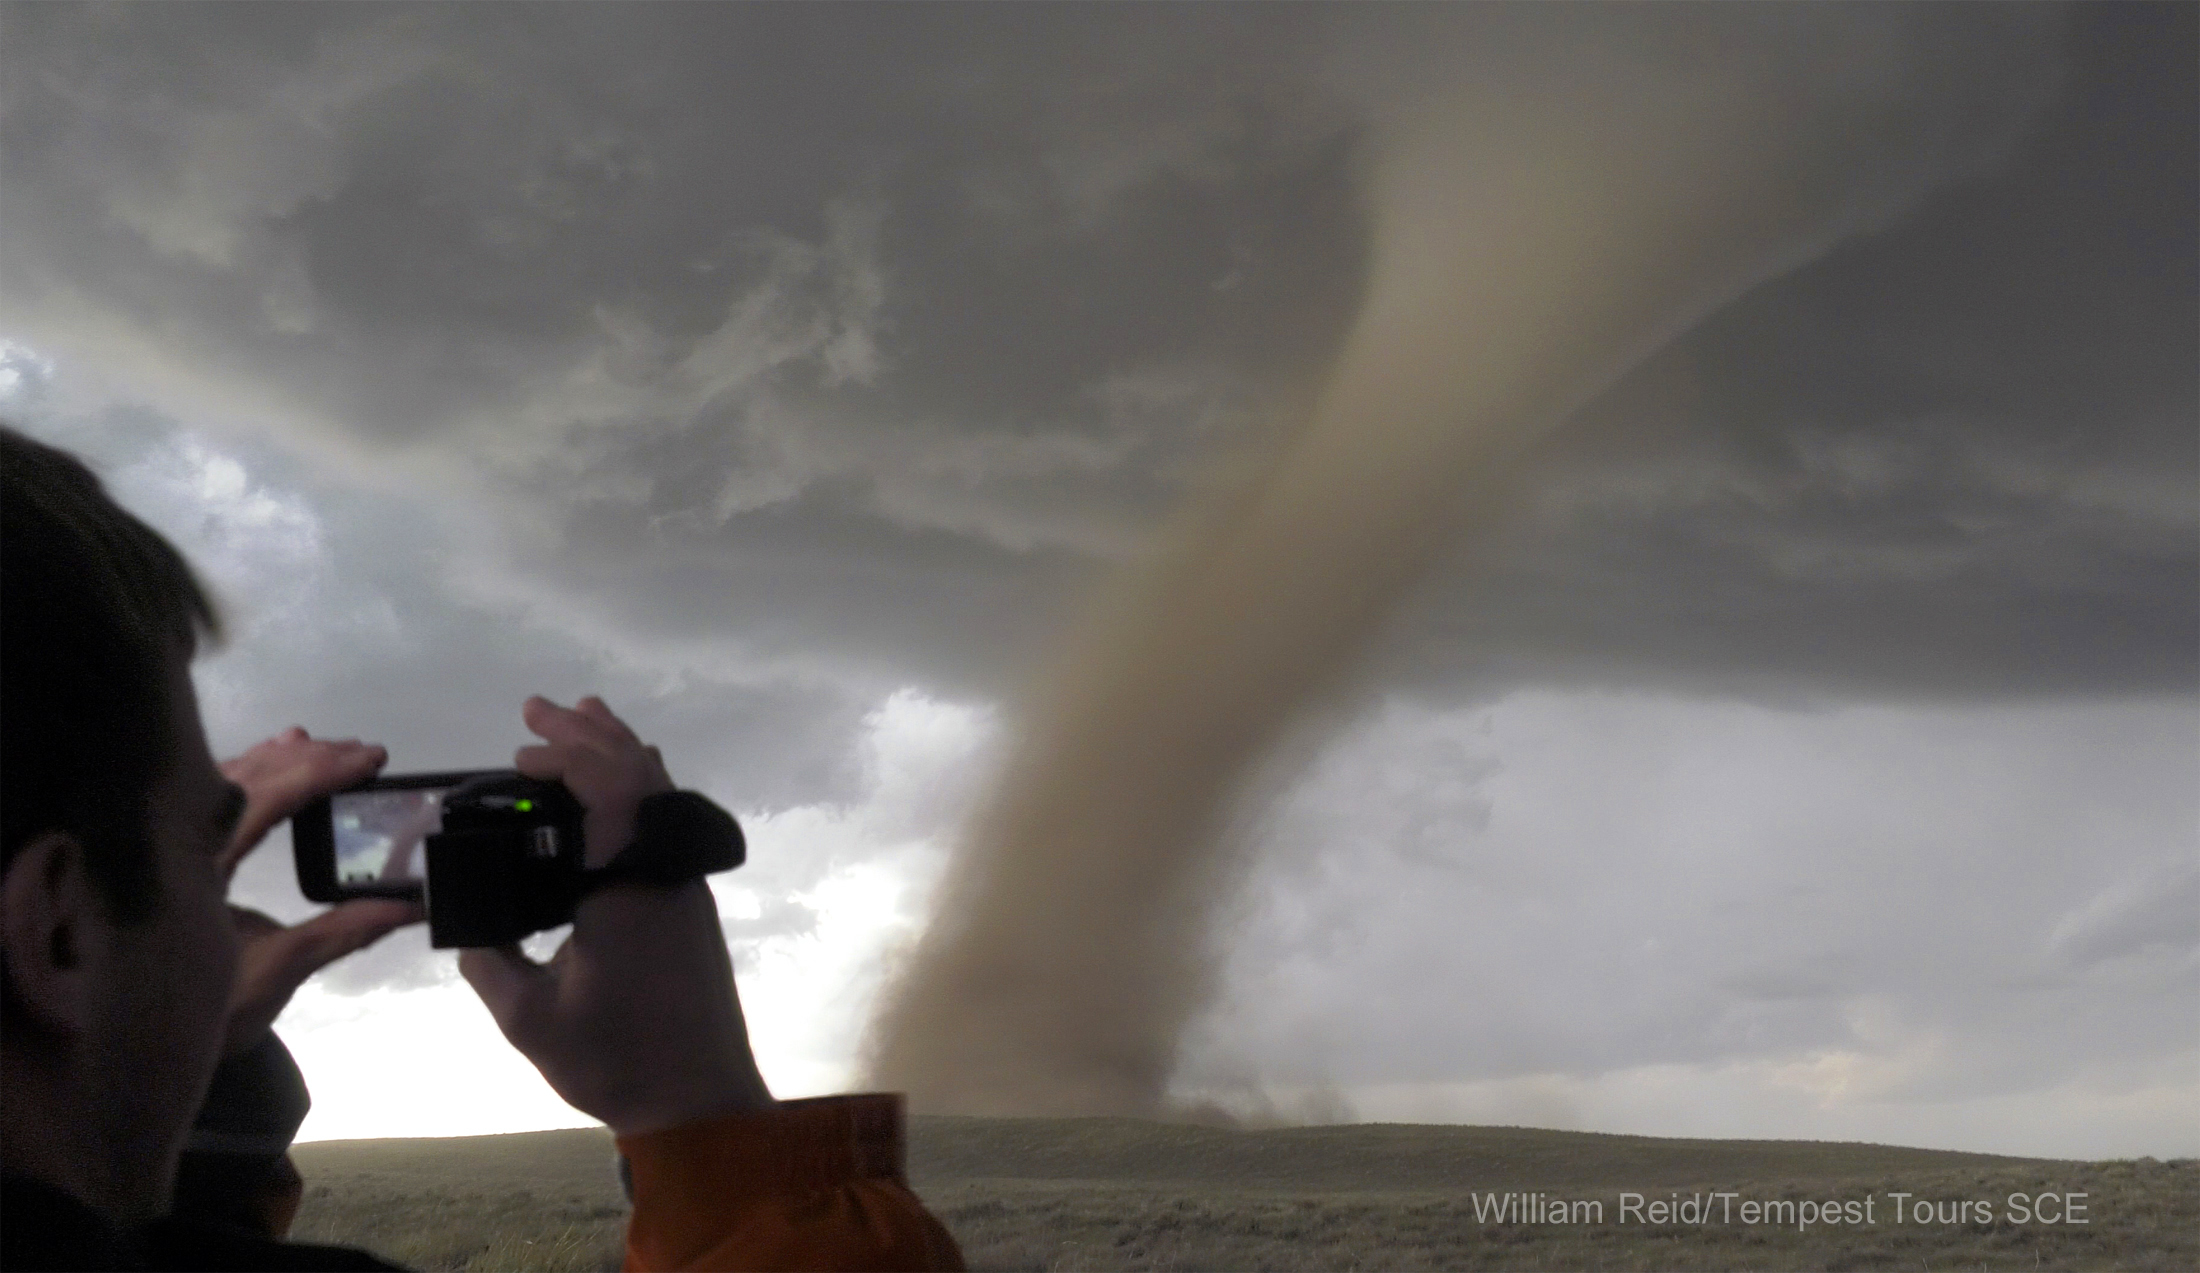 Copyright_Tempest_Tours_Storm_Chasing_Expeditions_Wray_tornado_with_camcorder_guest_WR_Tempest_Tours.jpg